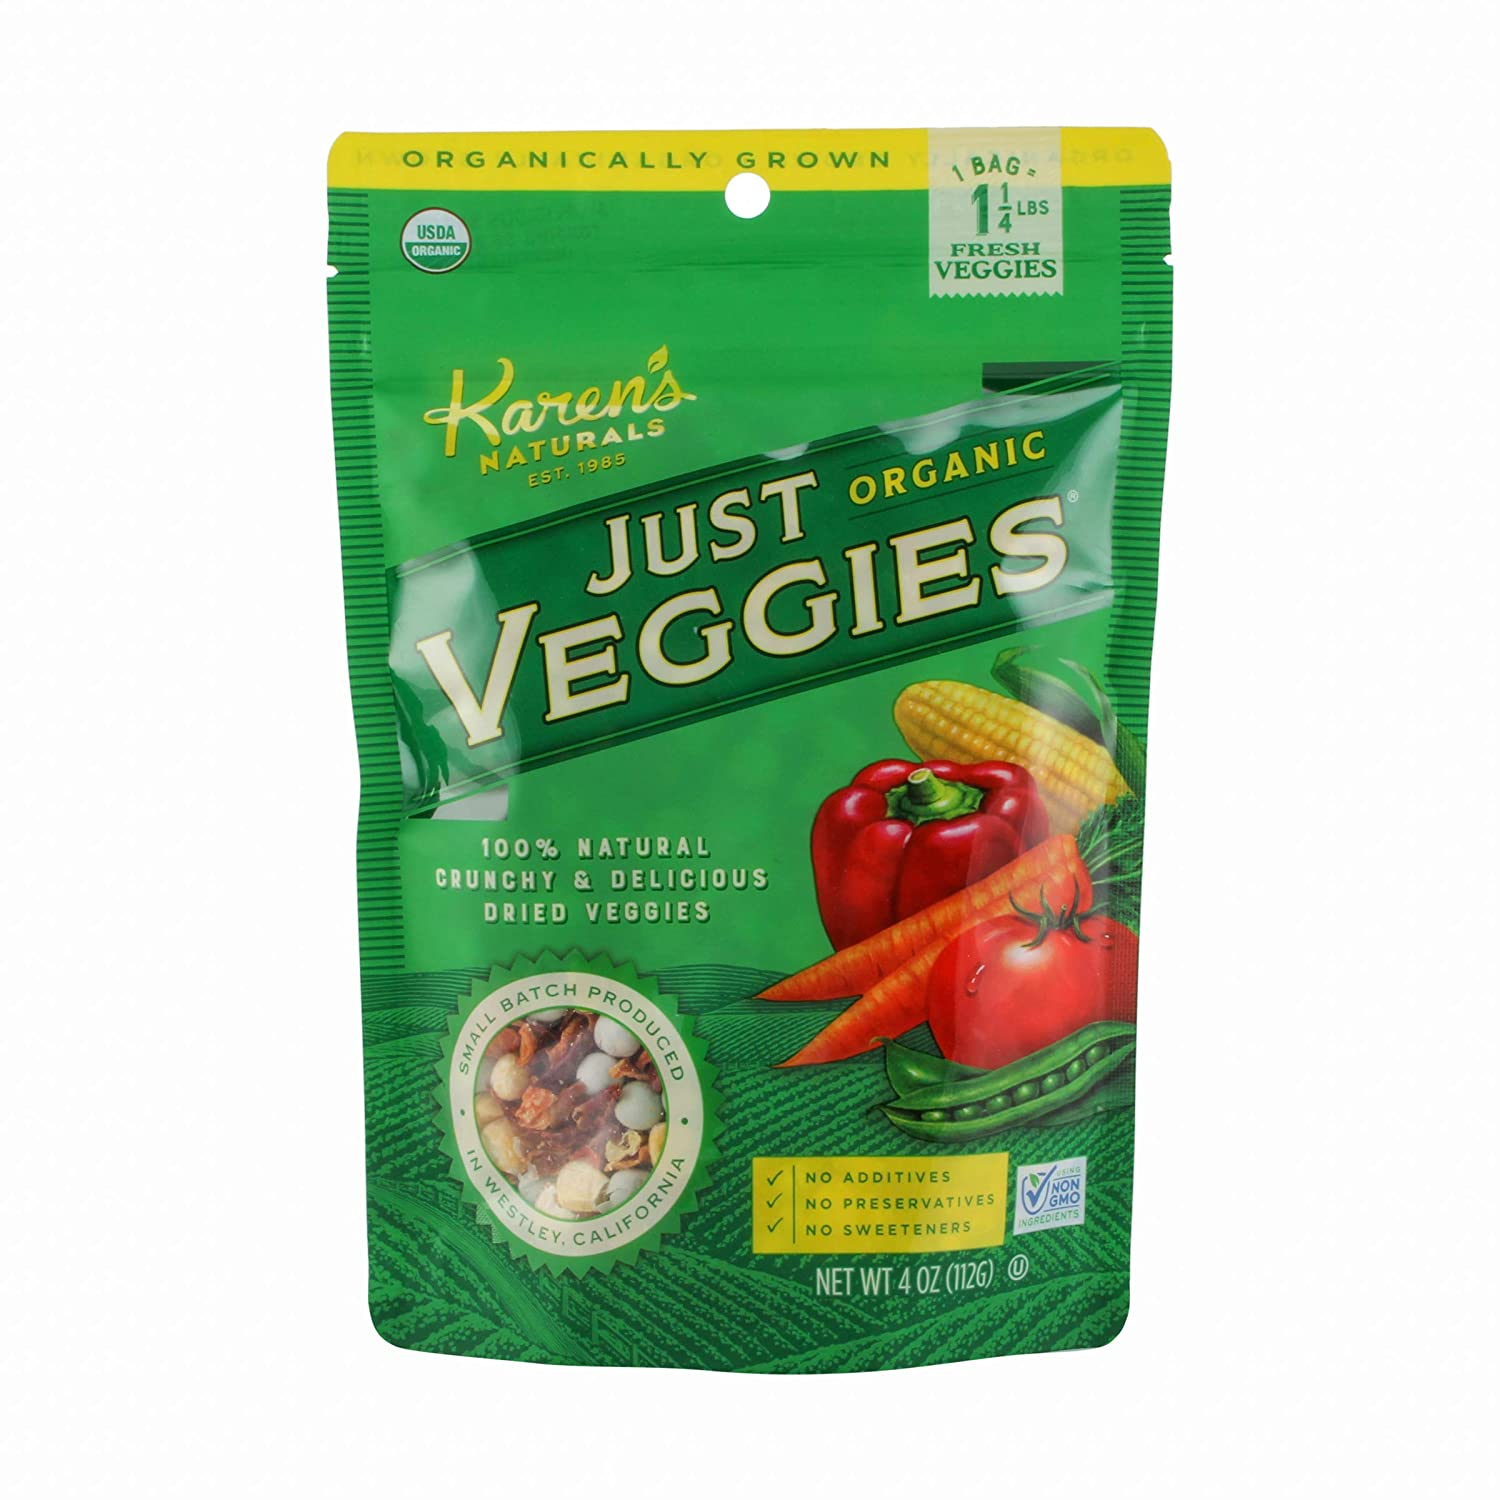 Karen's Naturals Organic Just Veggies, 4 Ounce Pouch (Packaging May Vary) Organic All Natural Freeze-Dried Fruits & Vegetables, No Additives or Preservatives, Non-GMO